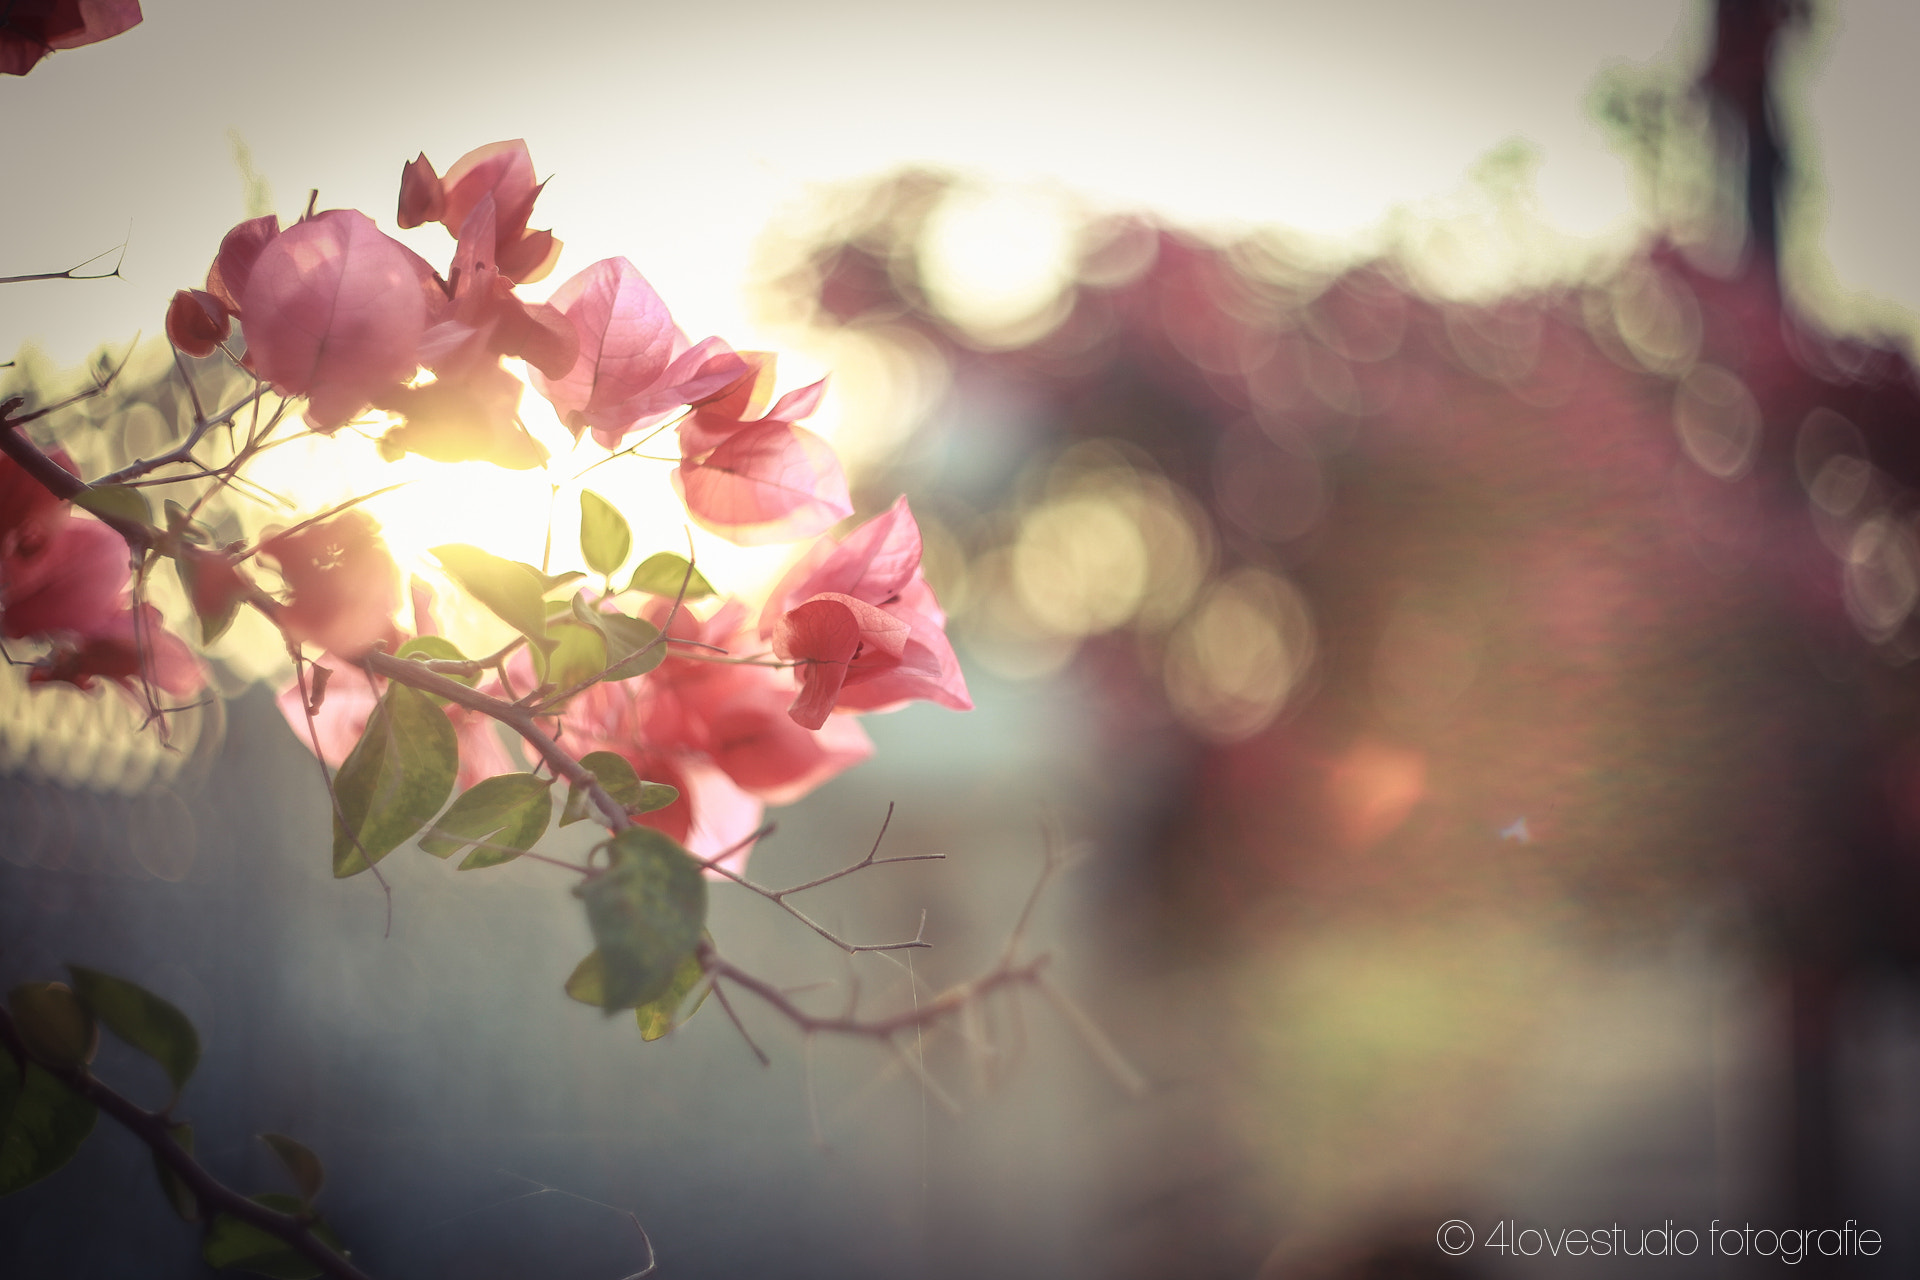 Photograph Flower in front of sunset by Rak Rmornwiwat on 500px